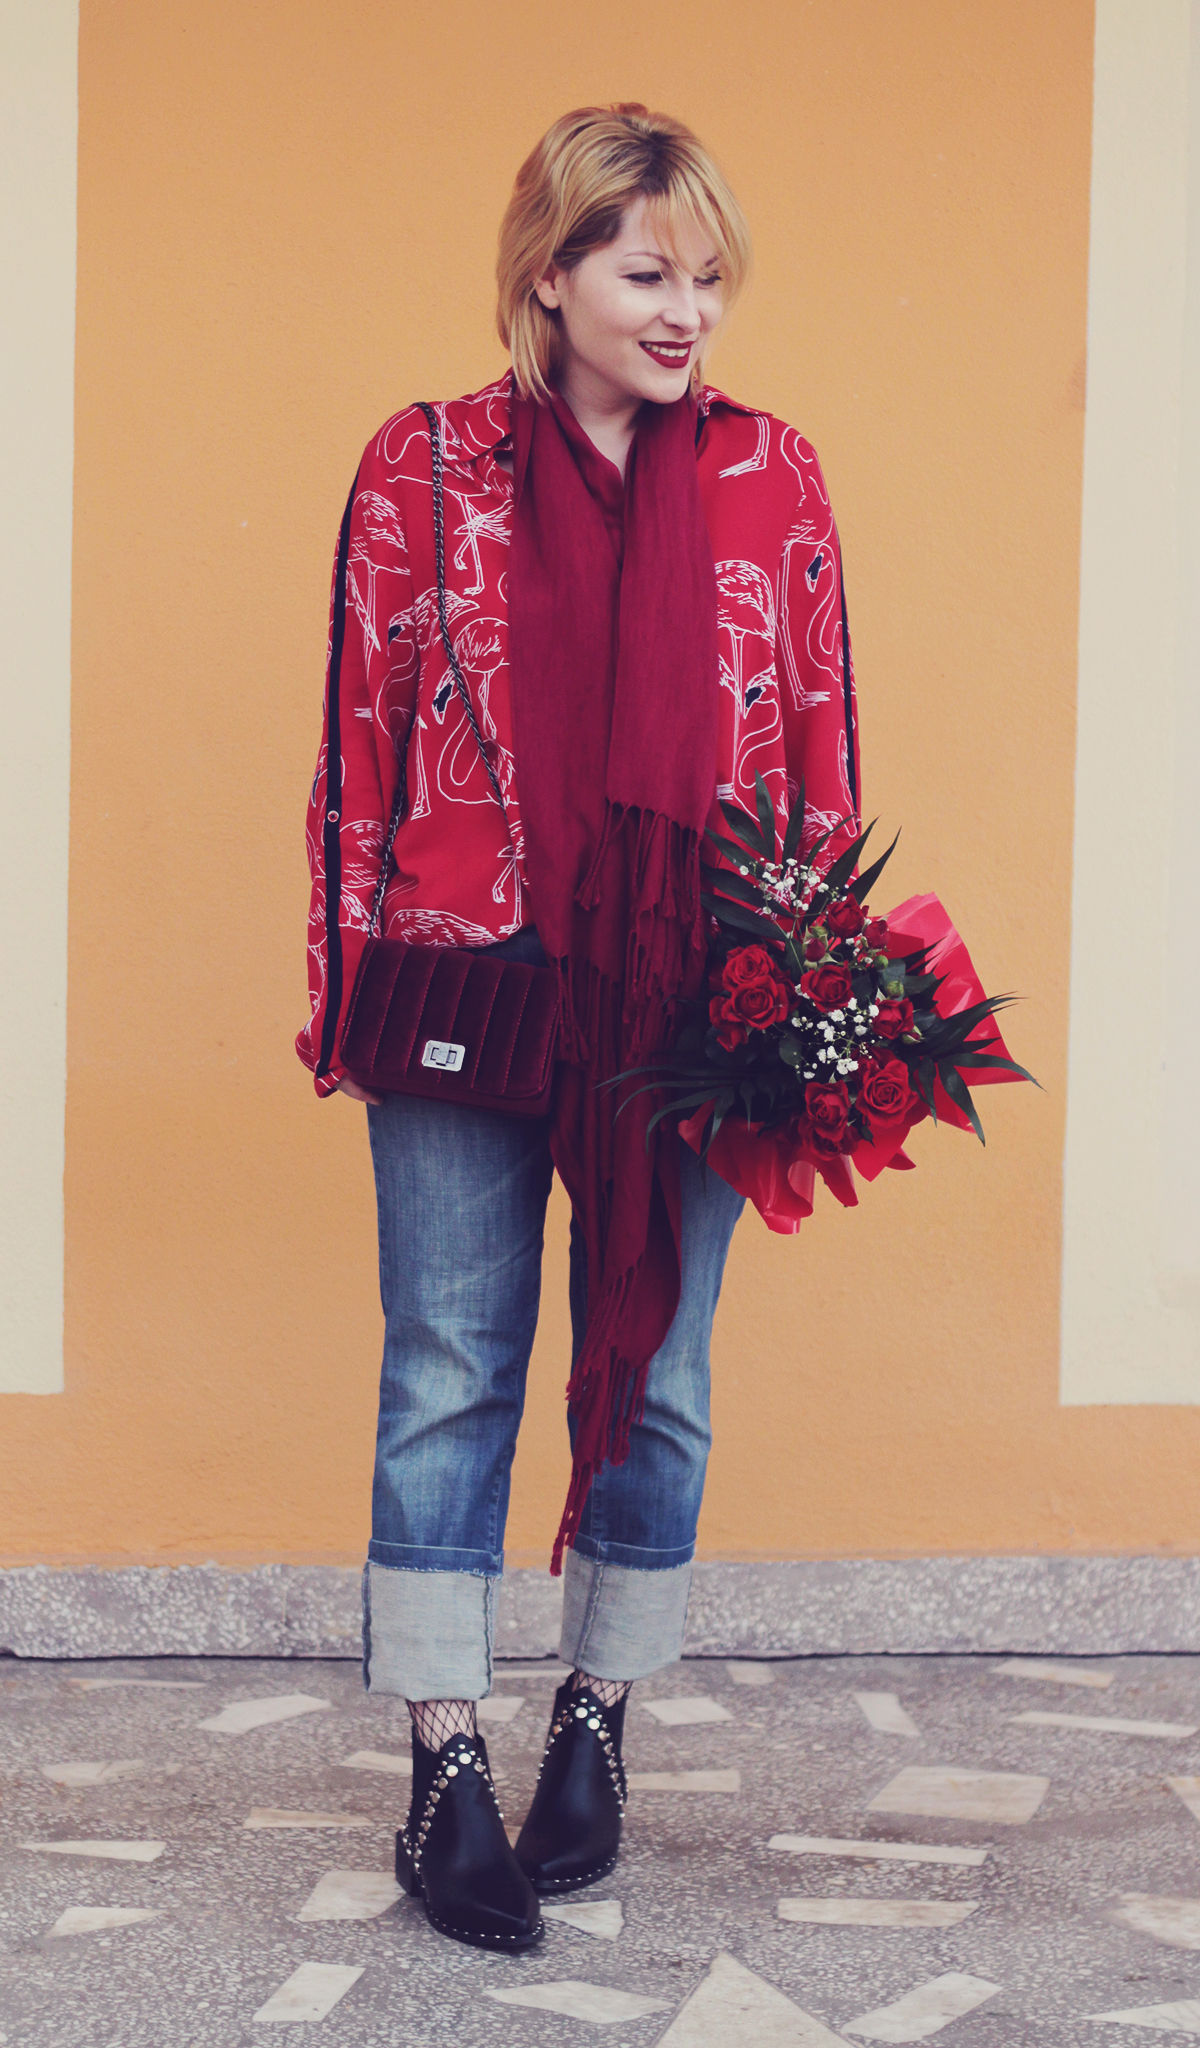 colorblocking, red, winter look, red long scarf, red flamingo shirt, red velvet mini bag, red roses bouquet, boots, spring, fishnet stockings, jeans